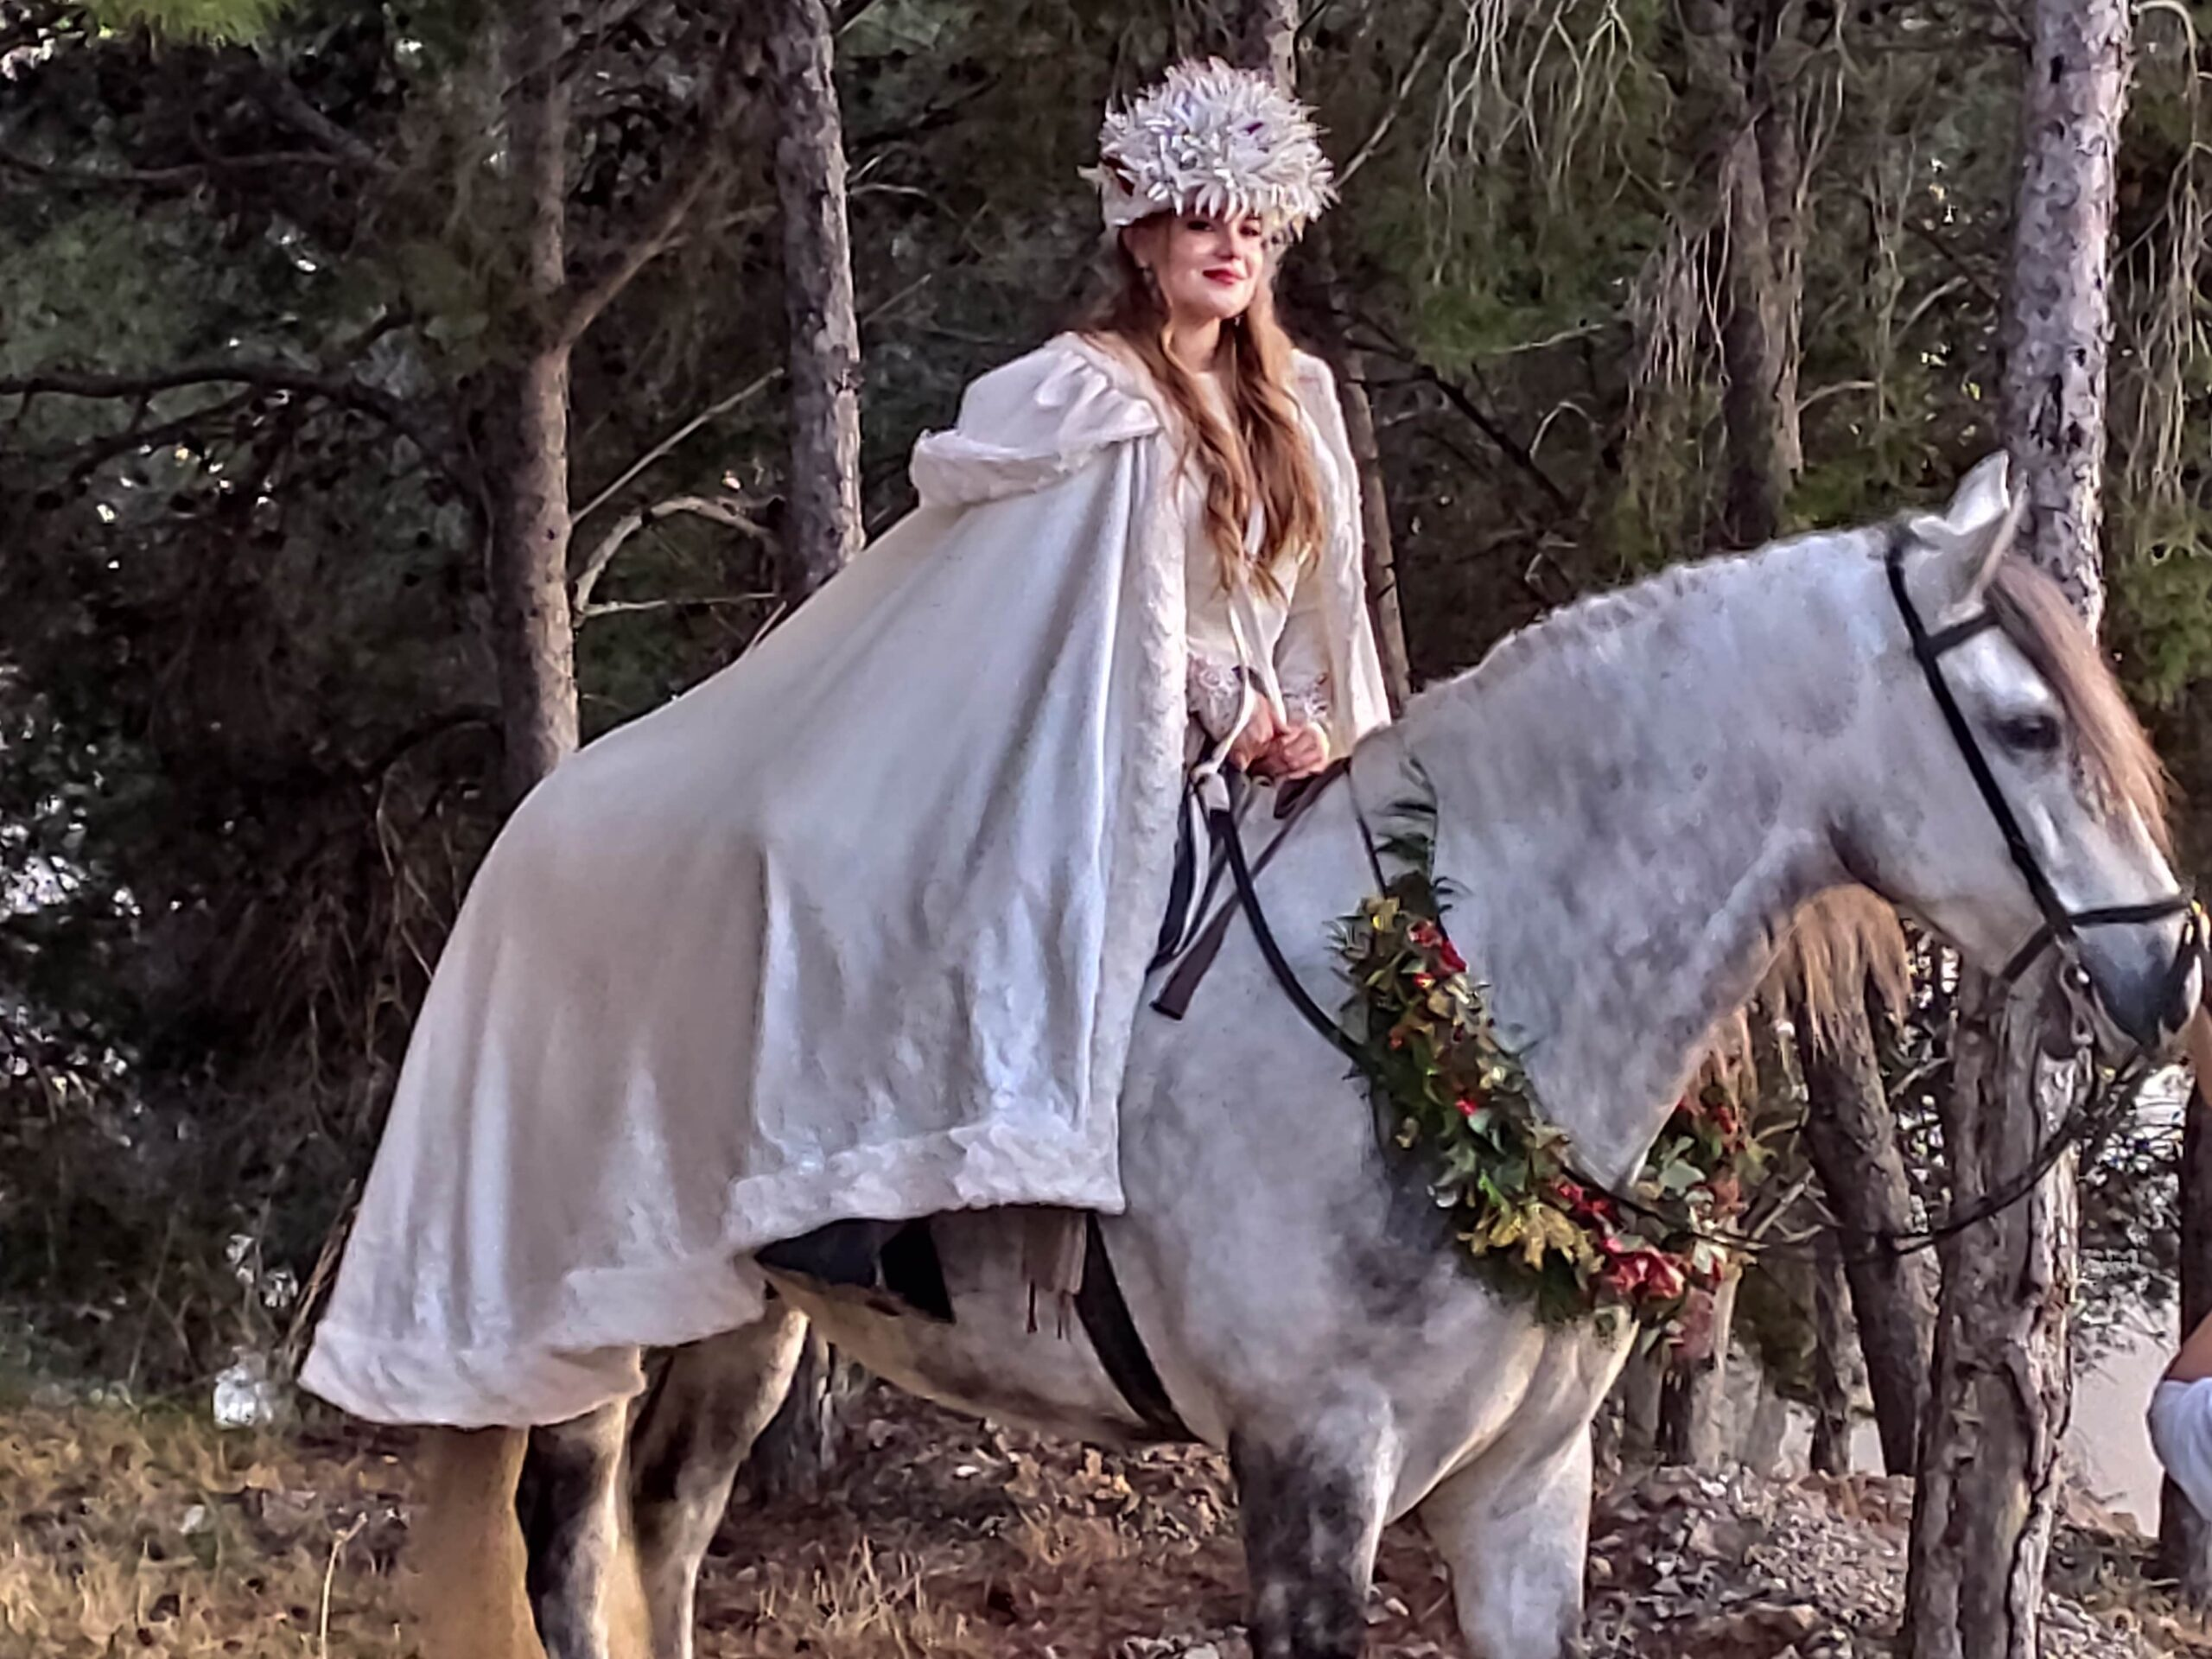 Fairy tale wedding horse and bride